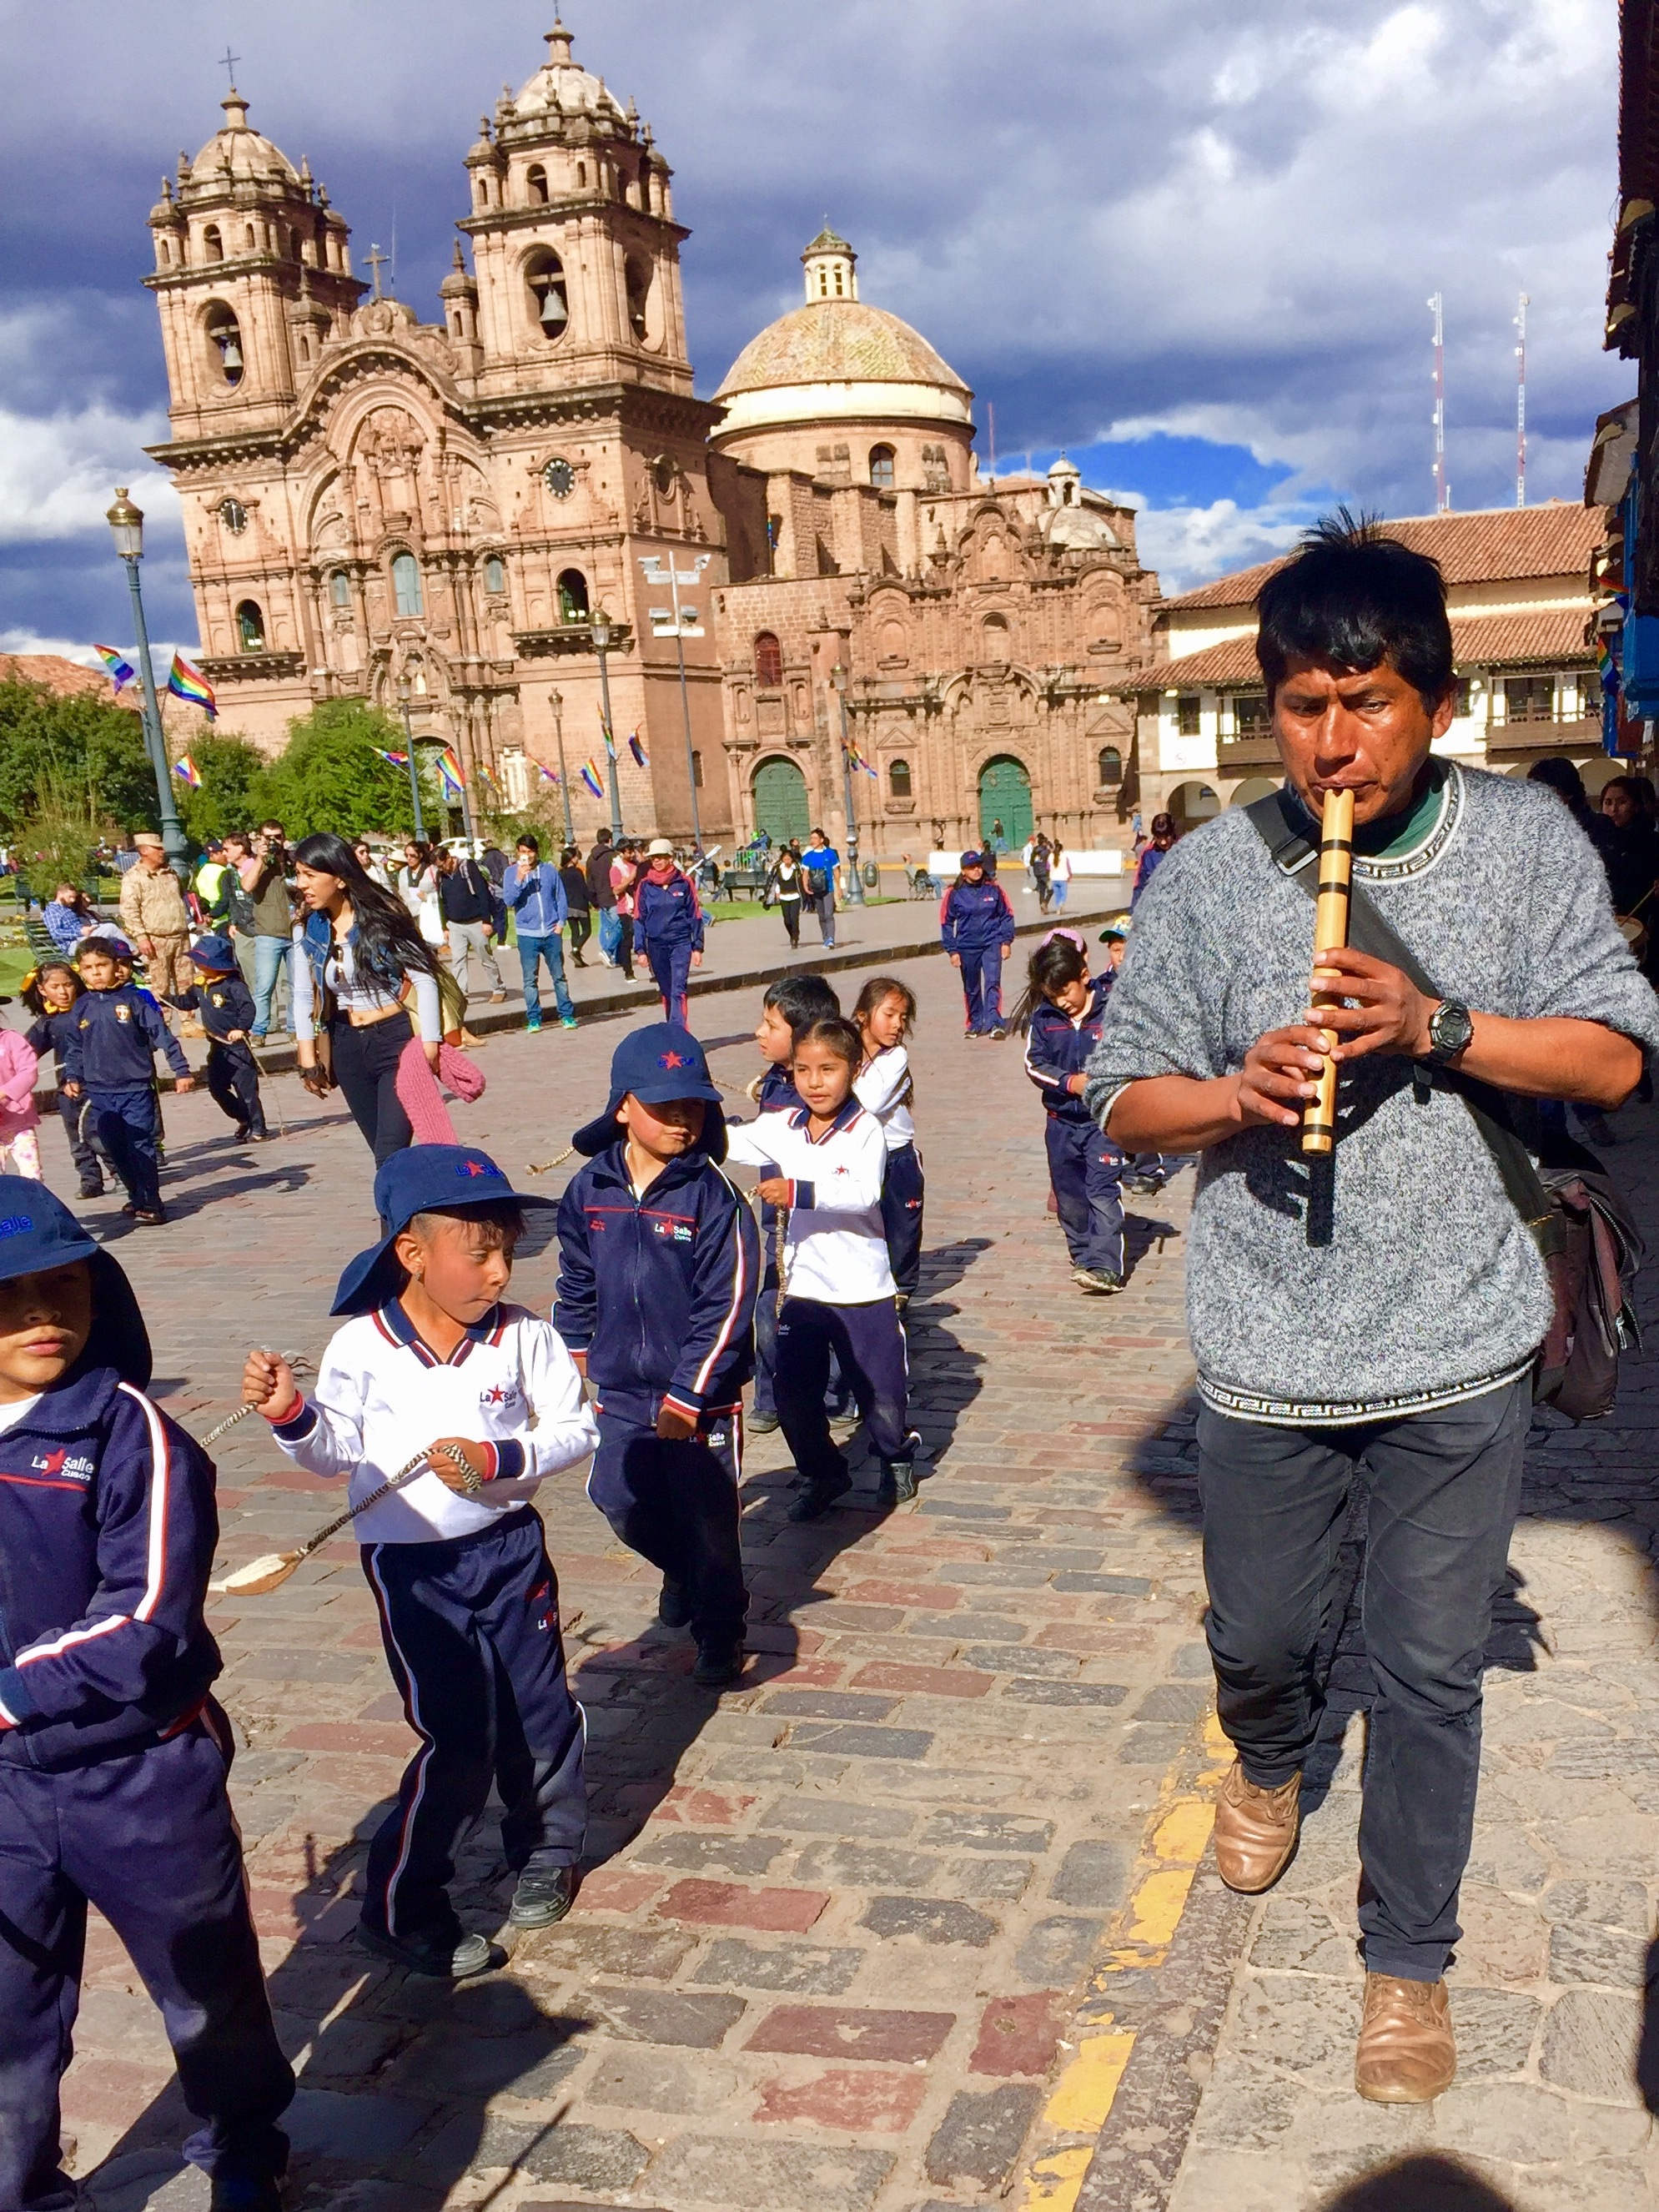 Children rehearsing in the Plaza de Armas (David Knowlton)